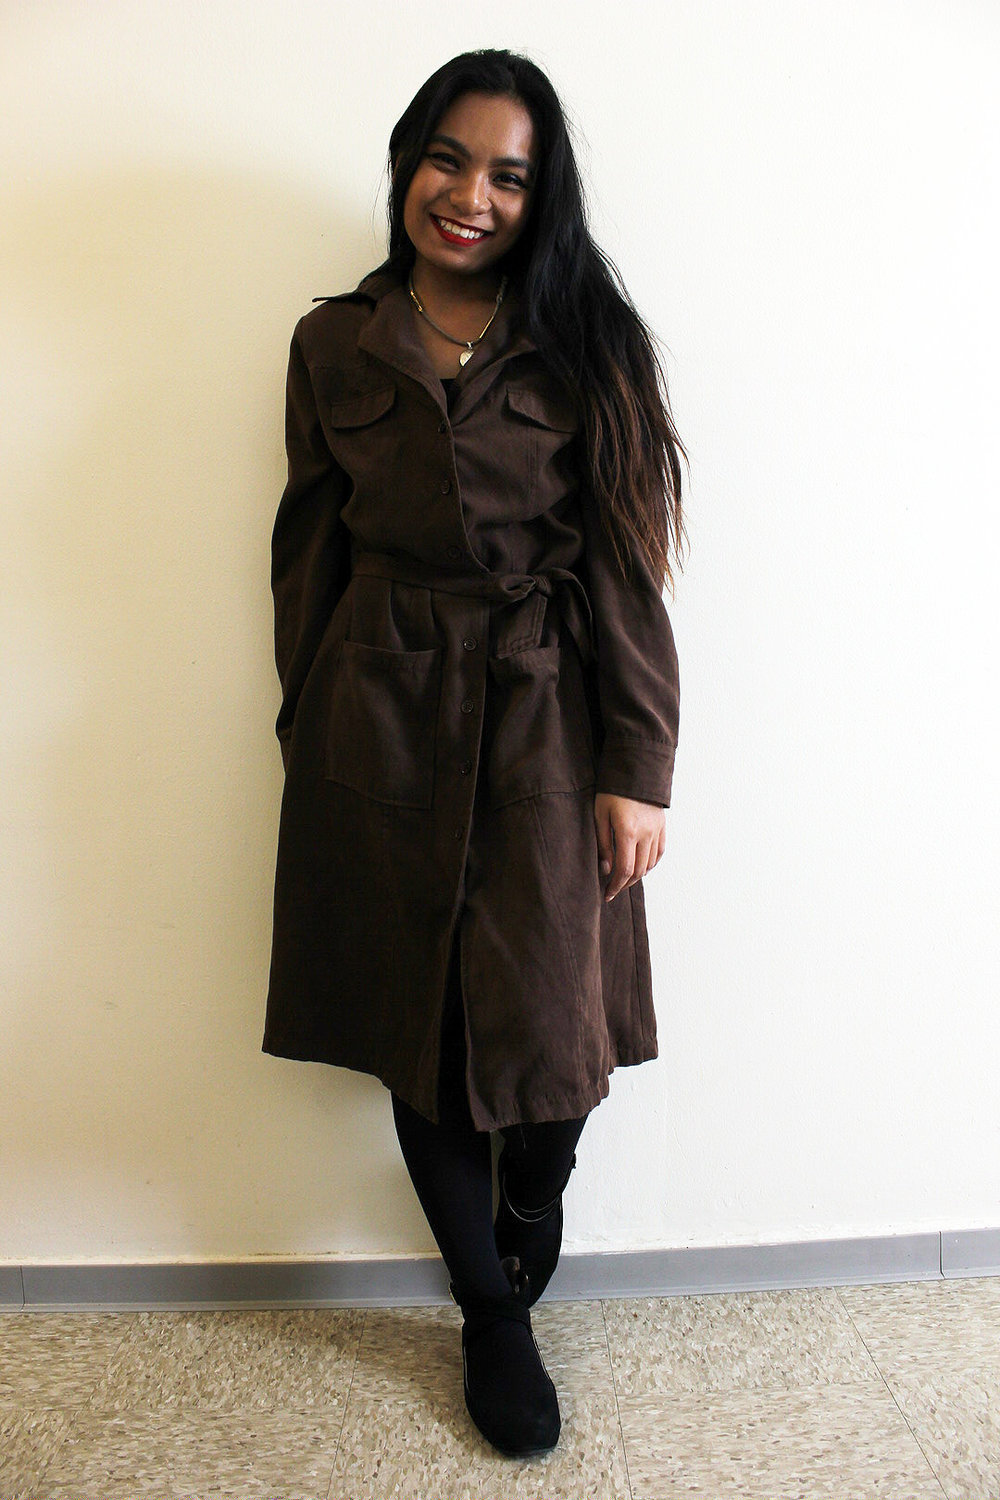 Trench-Coat-Dresses-Work-Appropriate-Office-Wear-Blogger-Style-LINDA-TENCHITRAN-10-1616x1080.jpg